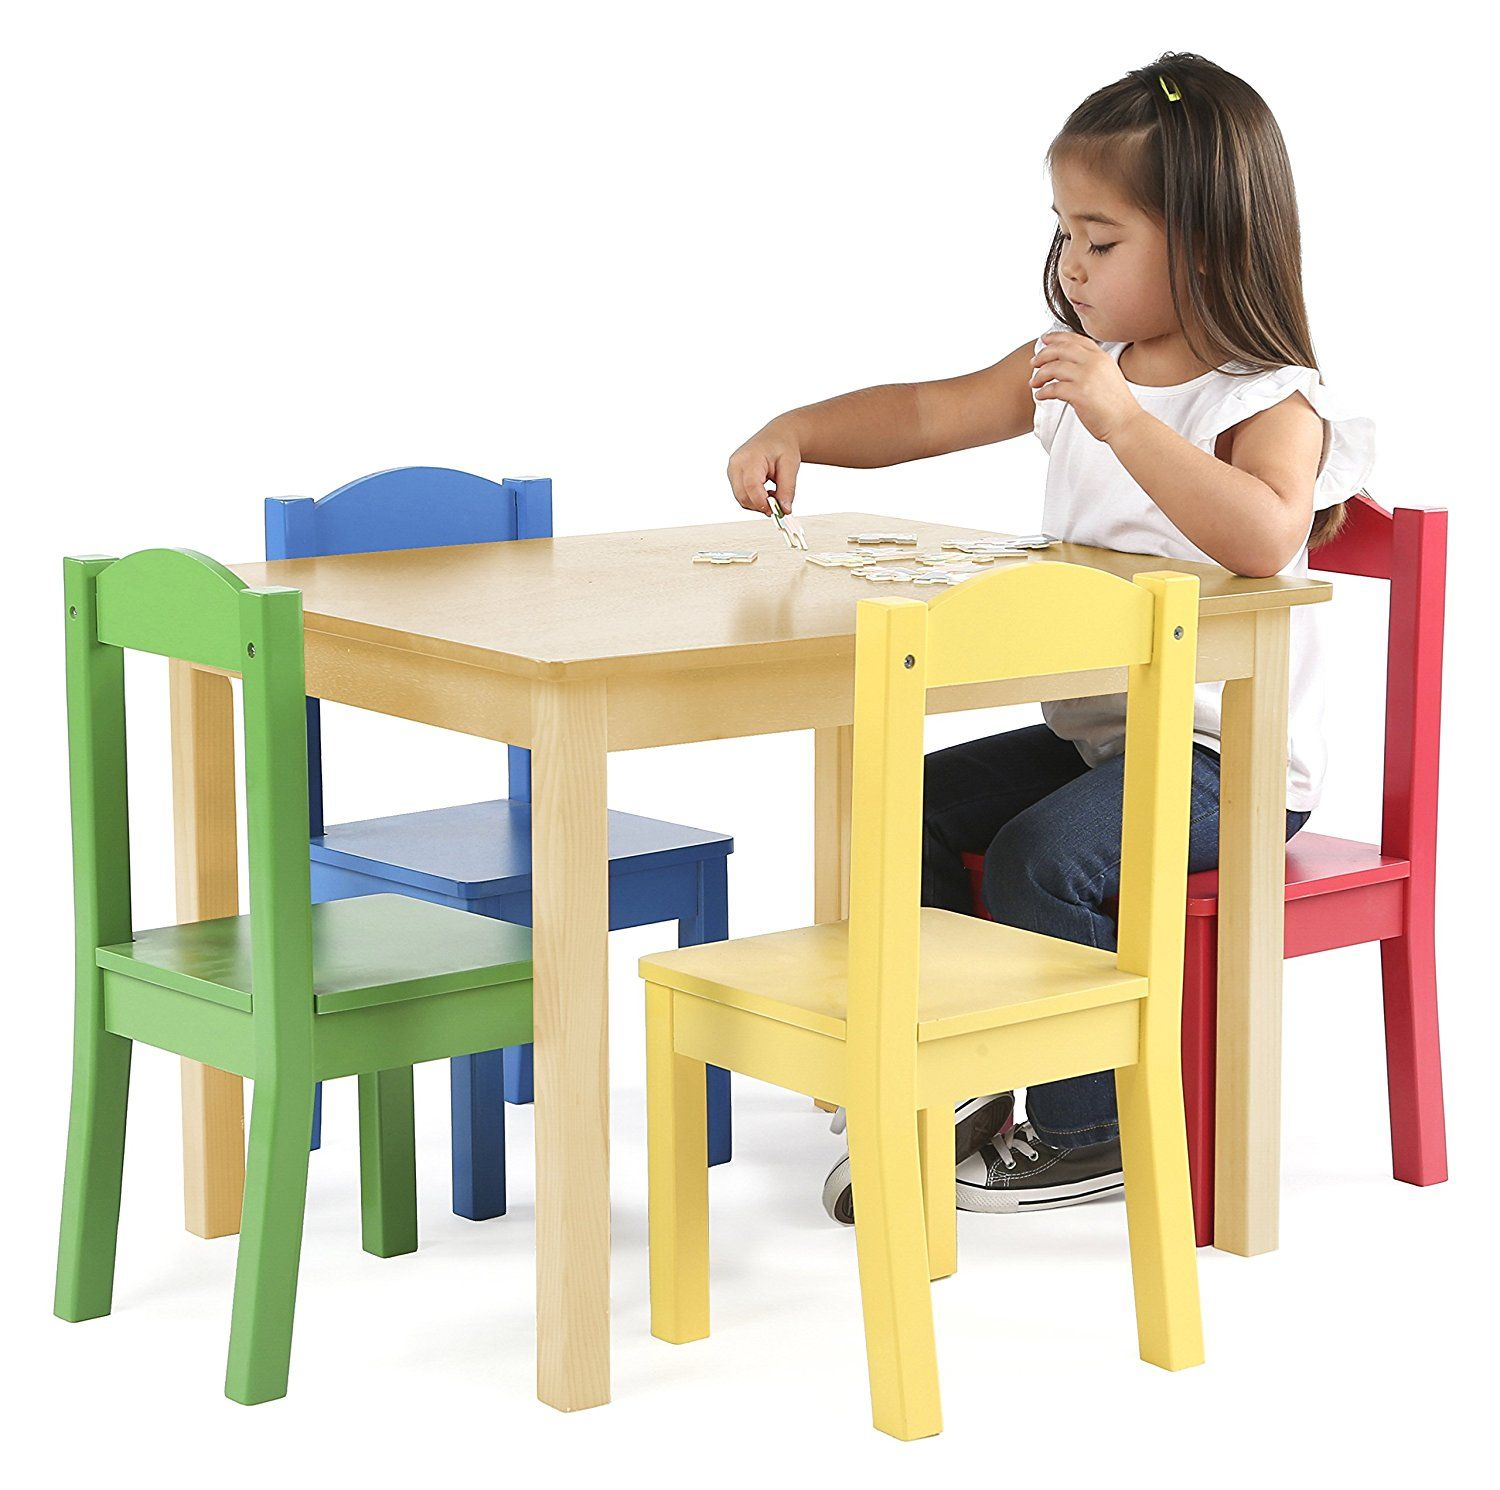 Amazon.com: Tot Tutors Kids Wood Table and 4 Chairs Set, Kitchen ...